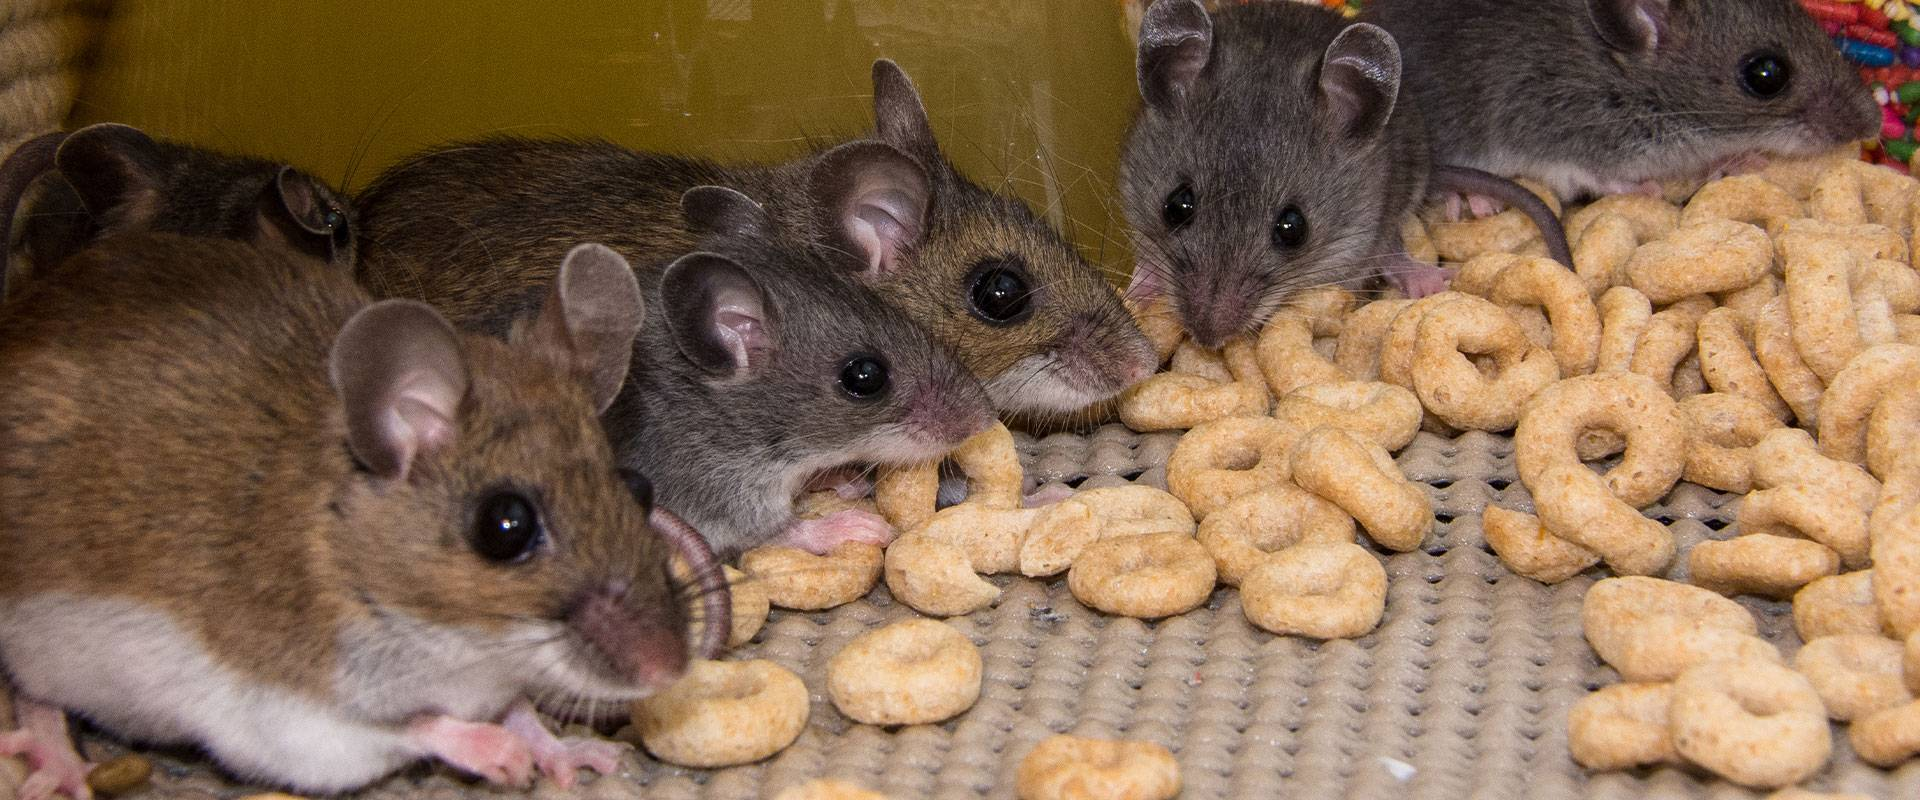 mouse eating cereal in a cupboard